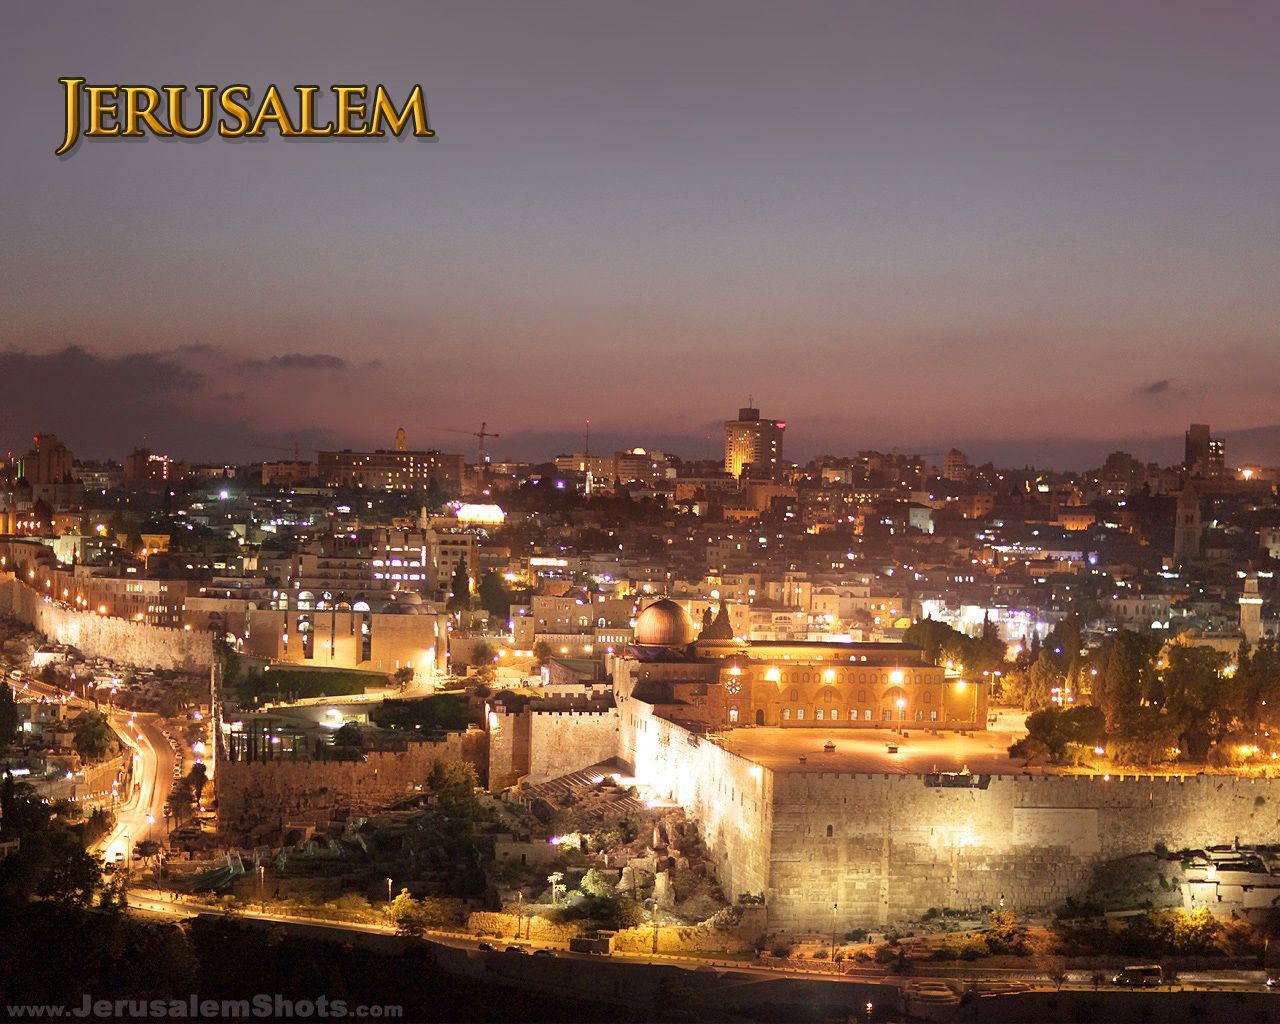 jerusalem the holy city of god The city of jerusalem is significant in a number of religious traditions, including the abrahamic religions judaism, christianity, and islam, which consider it a holy city some of the most sacred places for each of these religions are found in jerusalem and the one shared between all three is the temple mount.